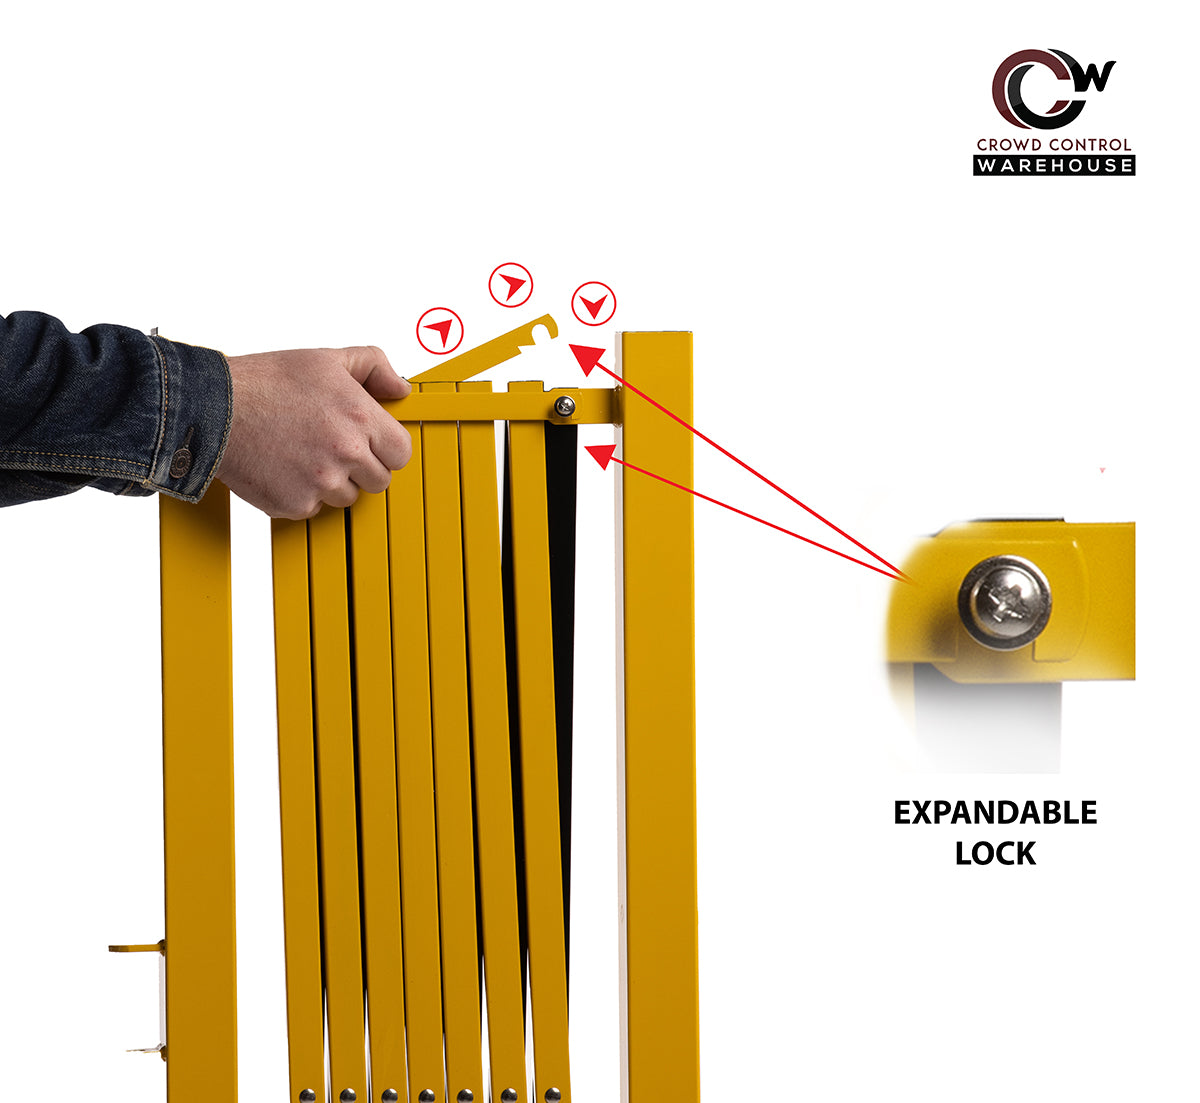 locking expandable barriers